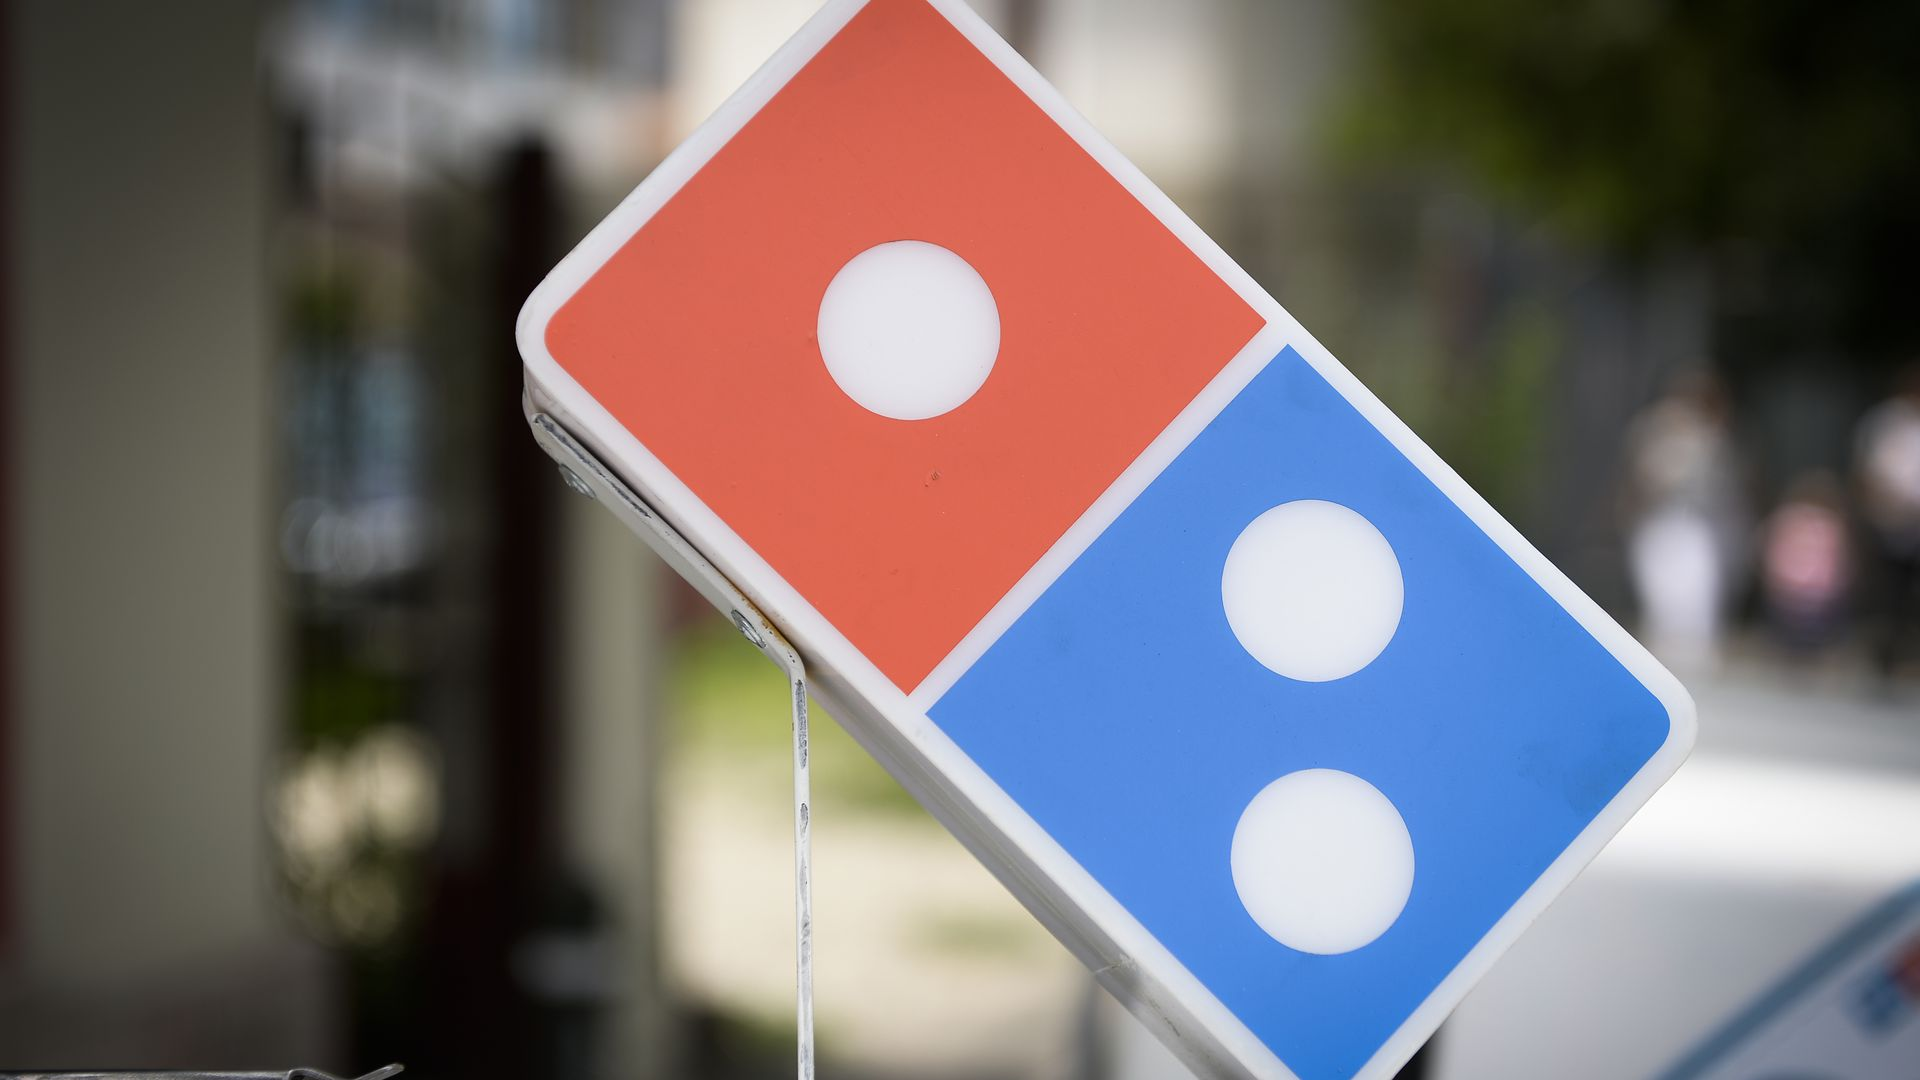 A Domino's Pizza logo on top of a car